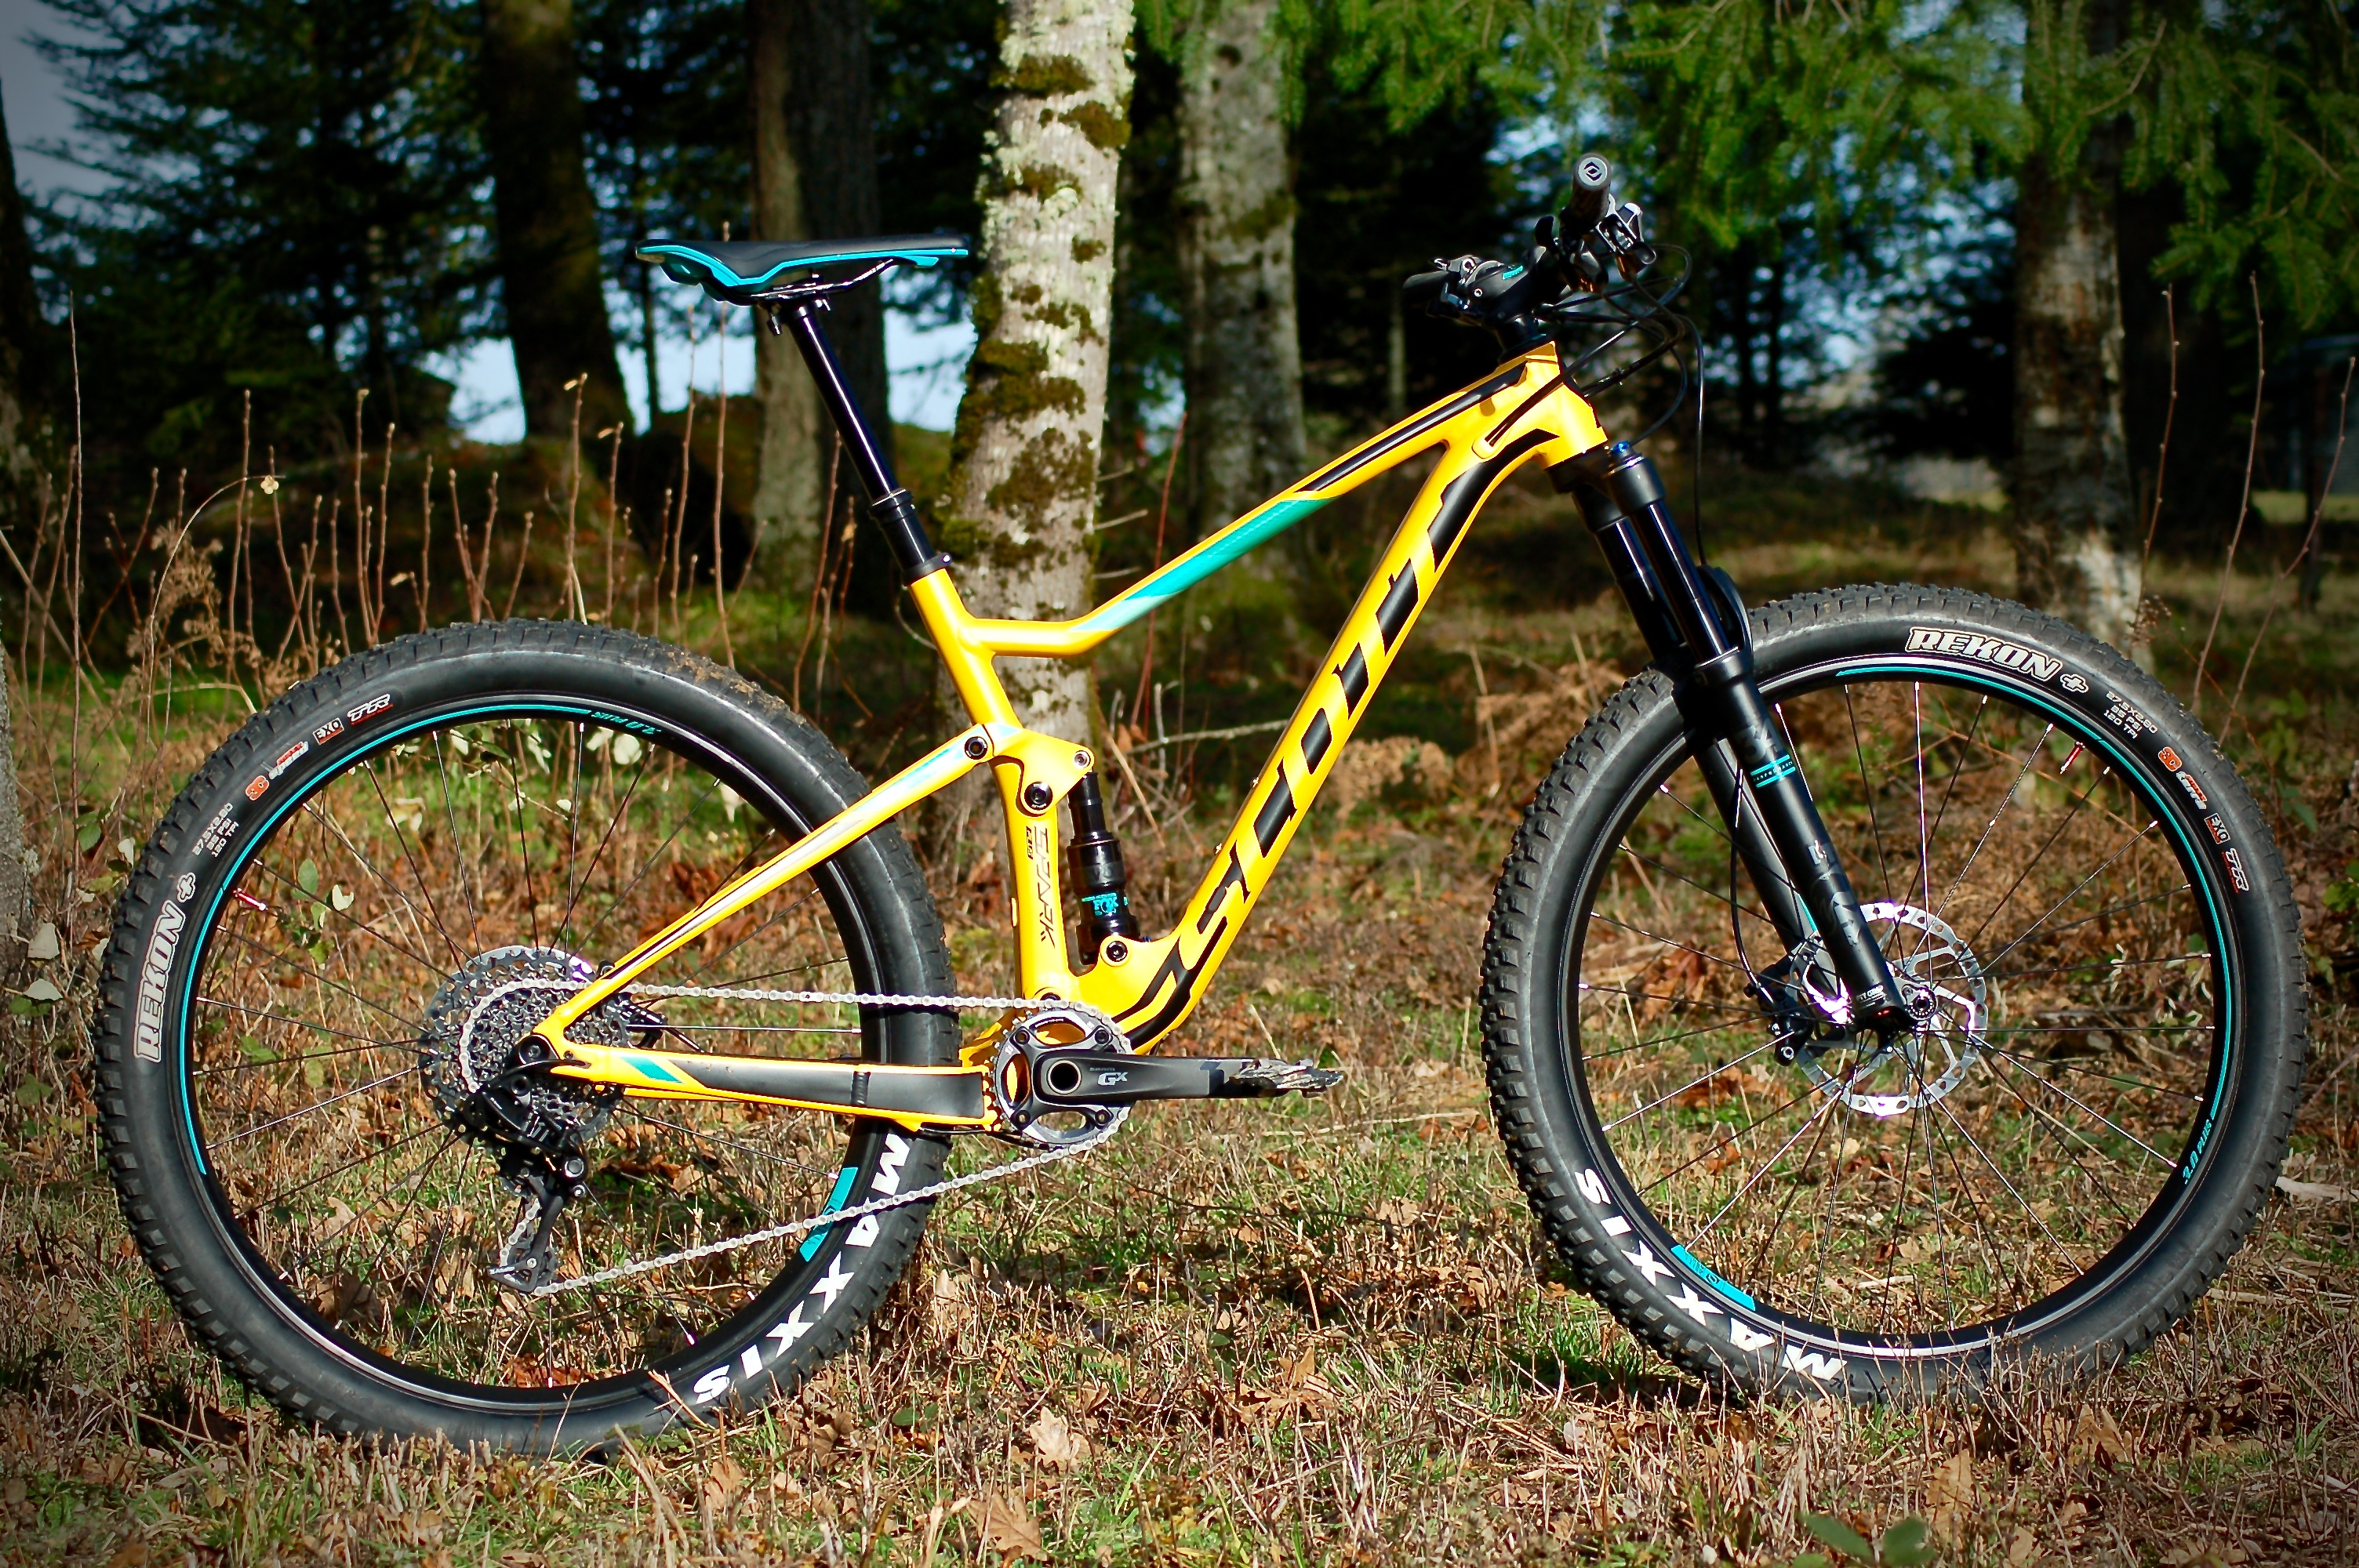 eb0677f2069 Scott makes no mention in regards to 29er wheel compatibility for the Spark  720 Plus, but does state so for their Genius Plus line.